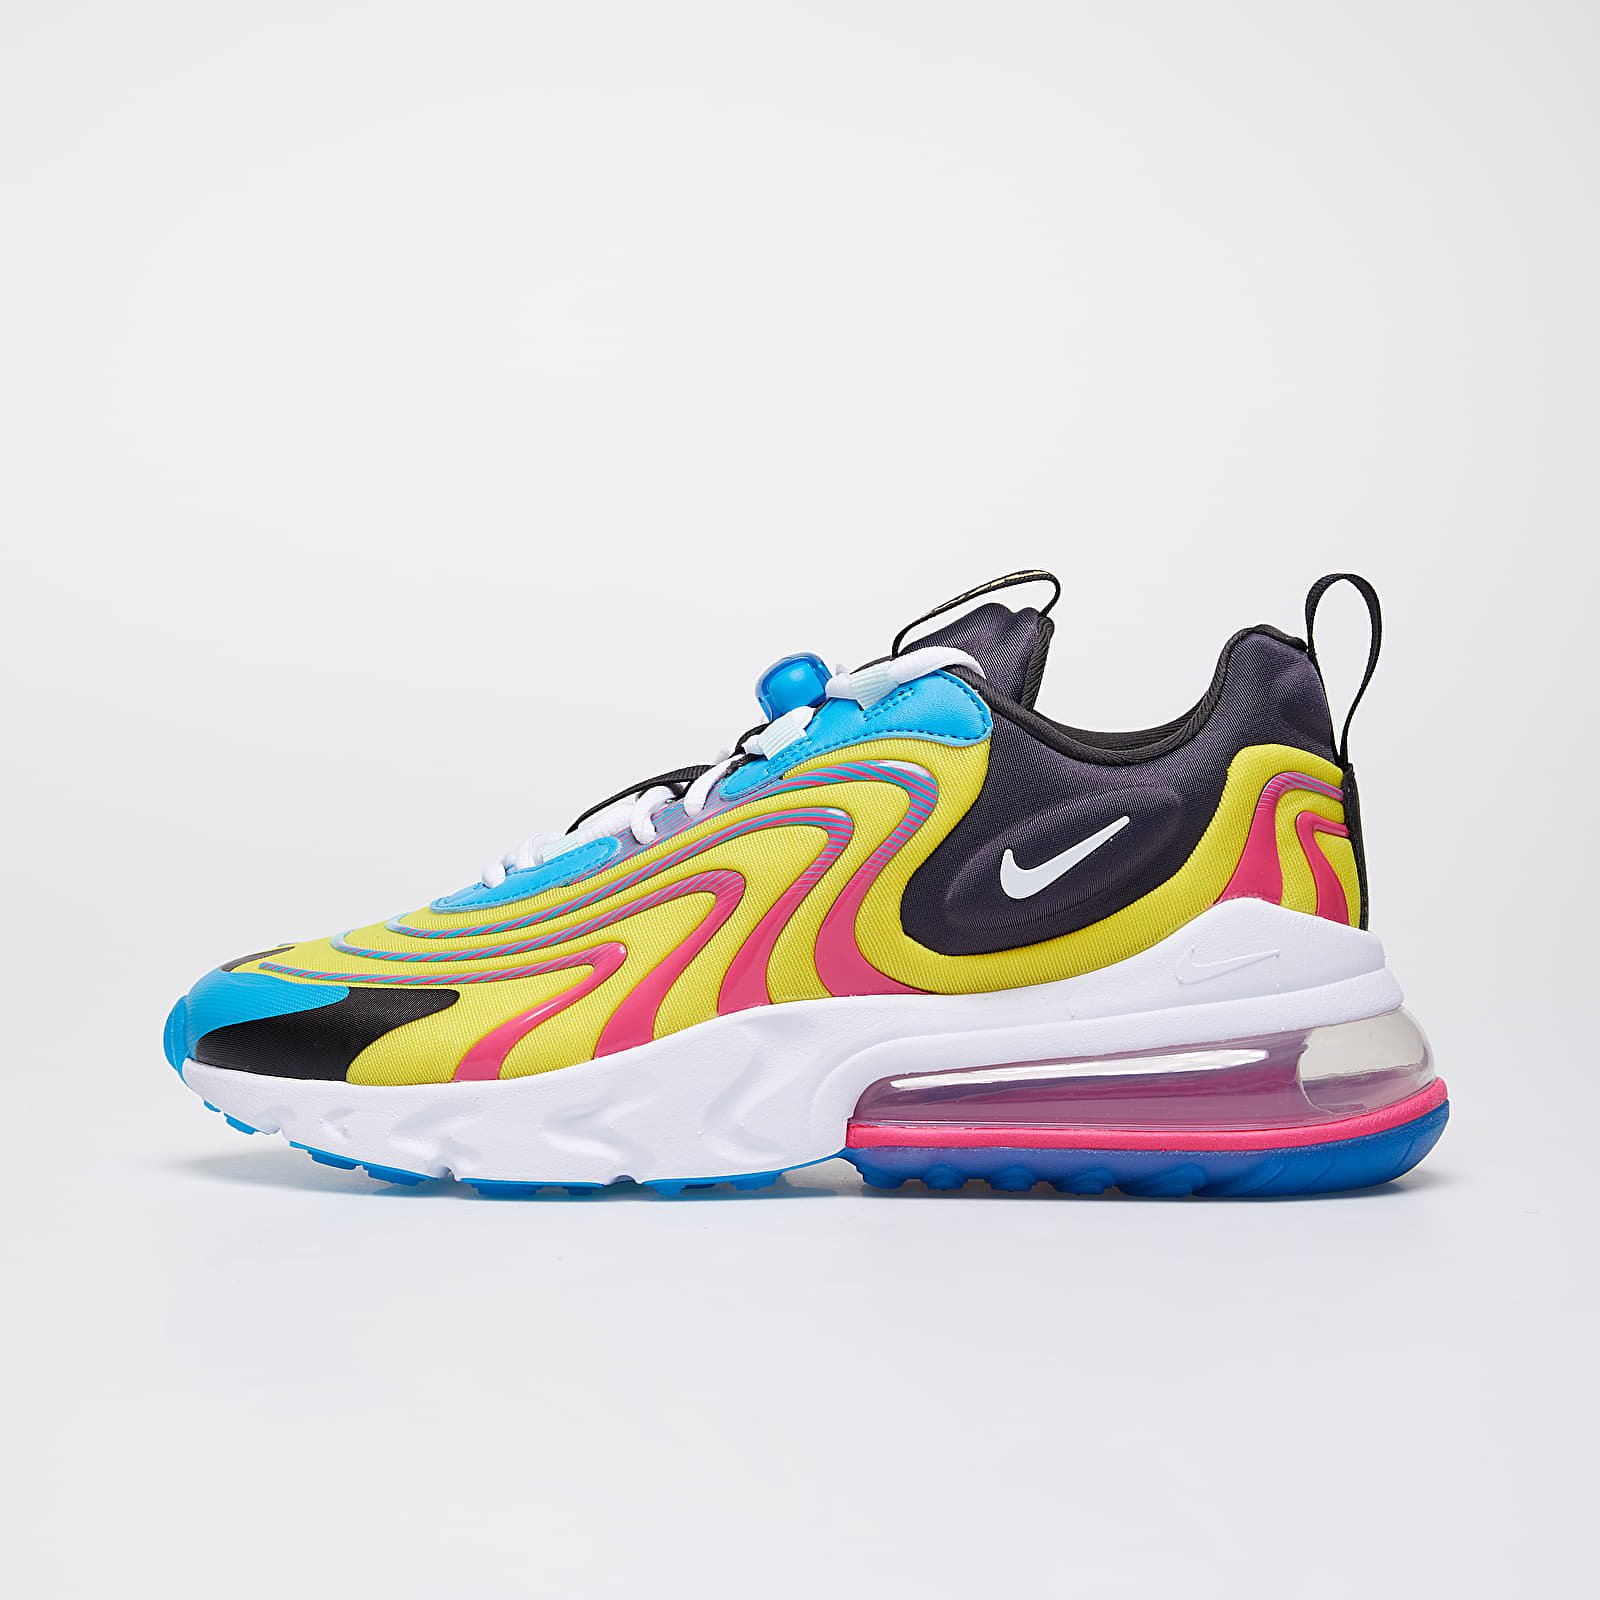 Muške tenisice Nike Air Max 270 React Eng Laser Blue/ White-Anthracite-Watermelon